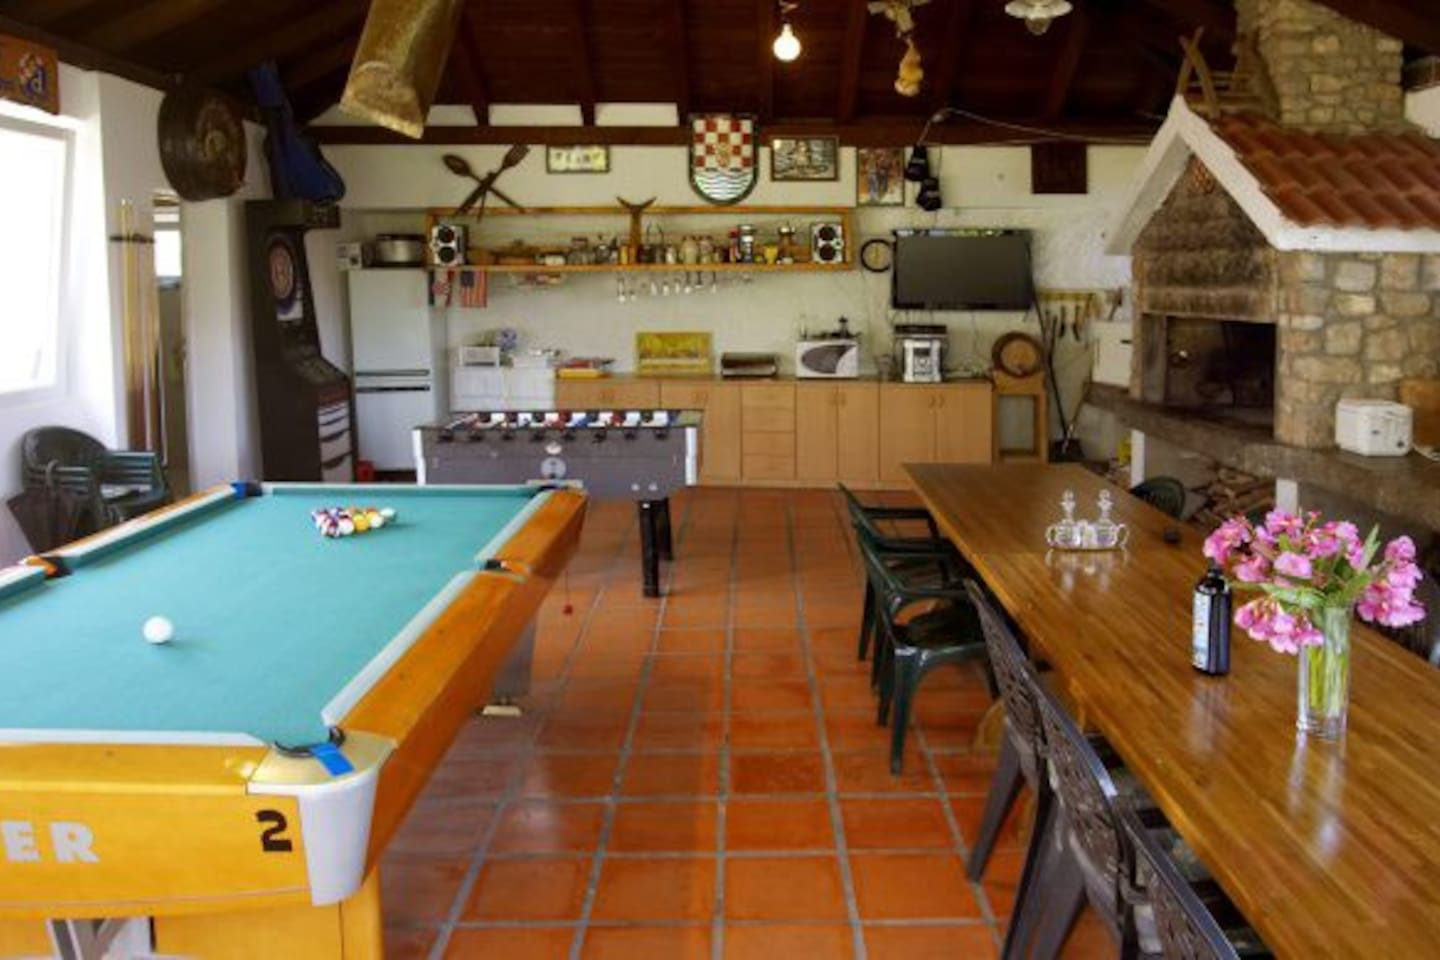 large kitchen, party area, pool table, darts, table football